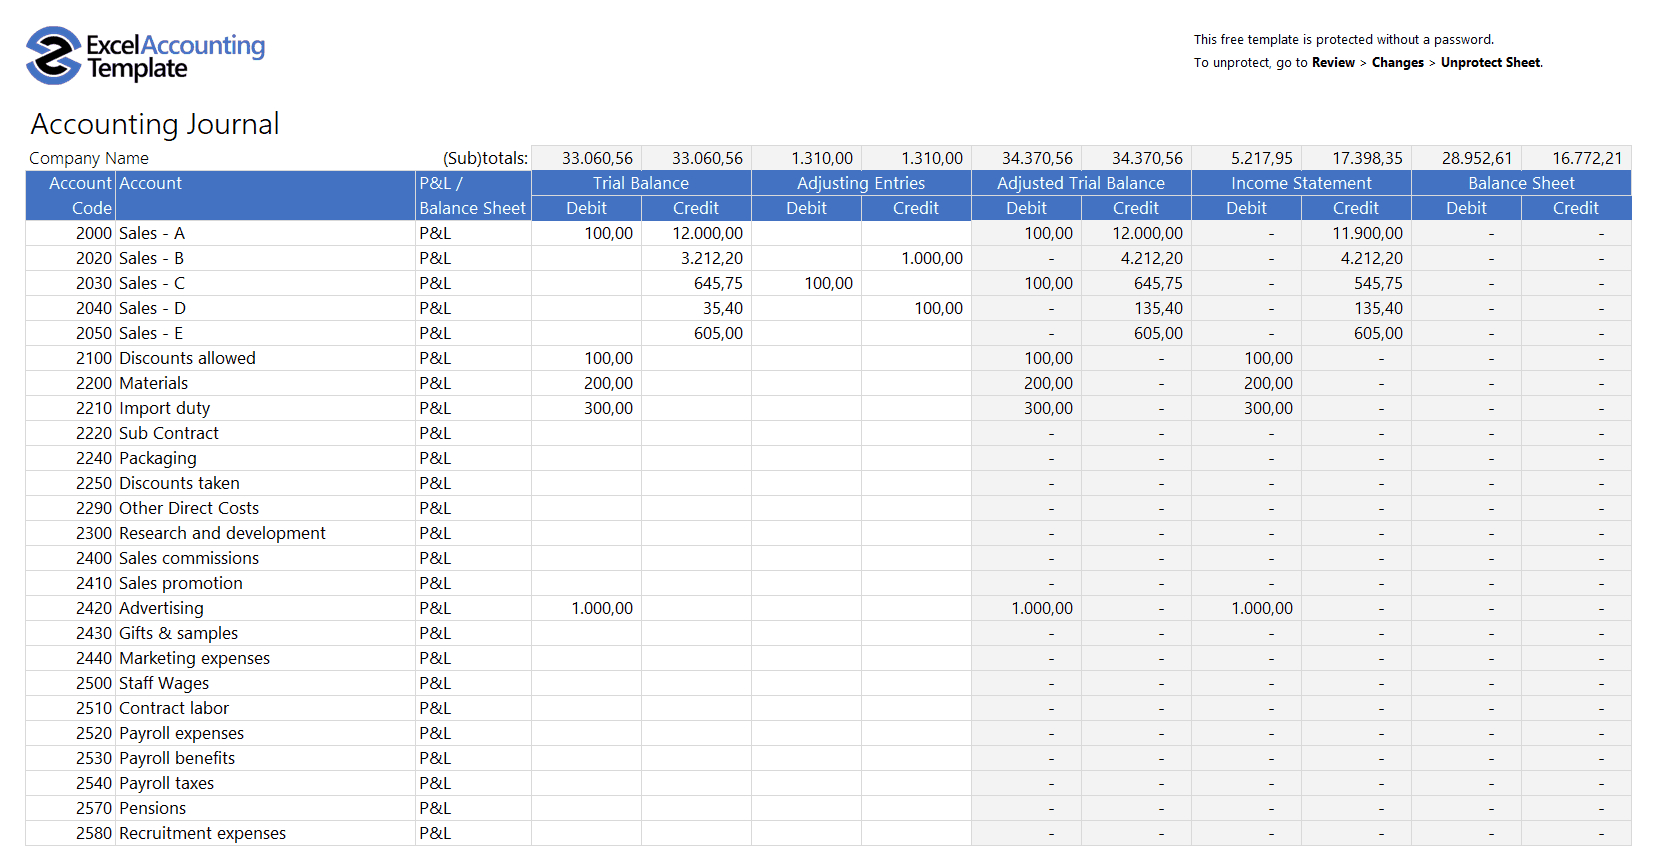 Account Balance Spreadsheet Template Regarding Free Accounting Templates In Excel  Download For Your Business